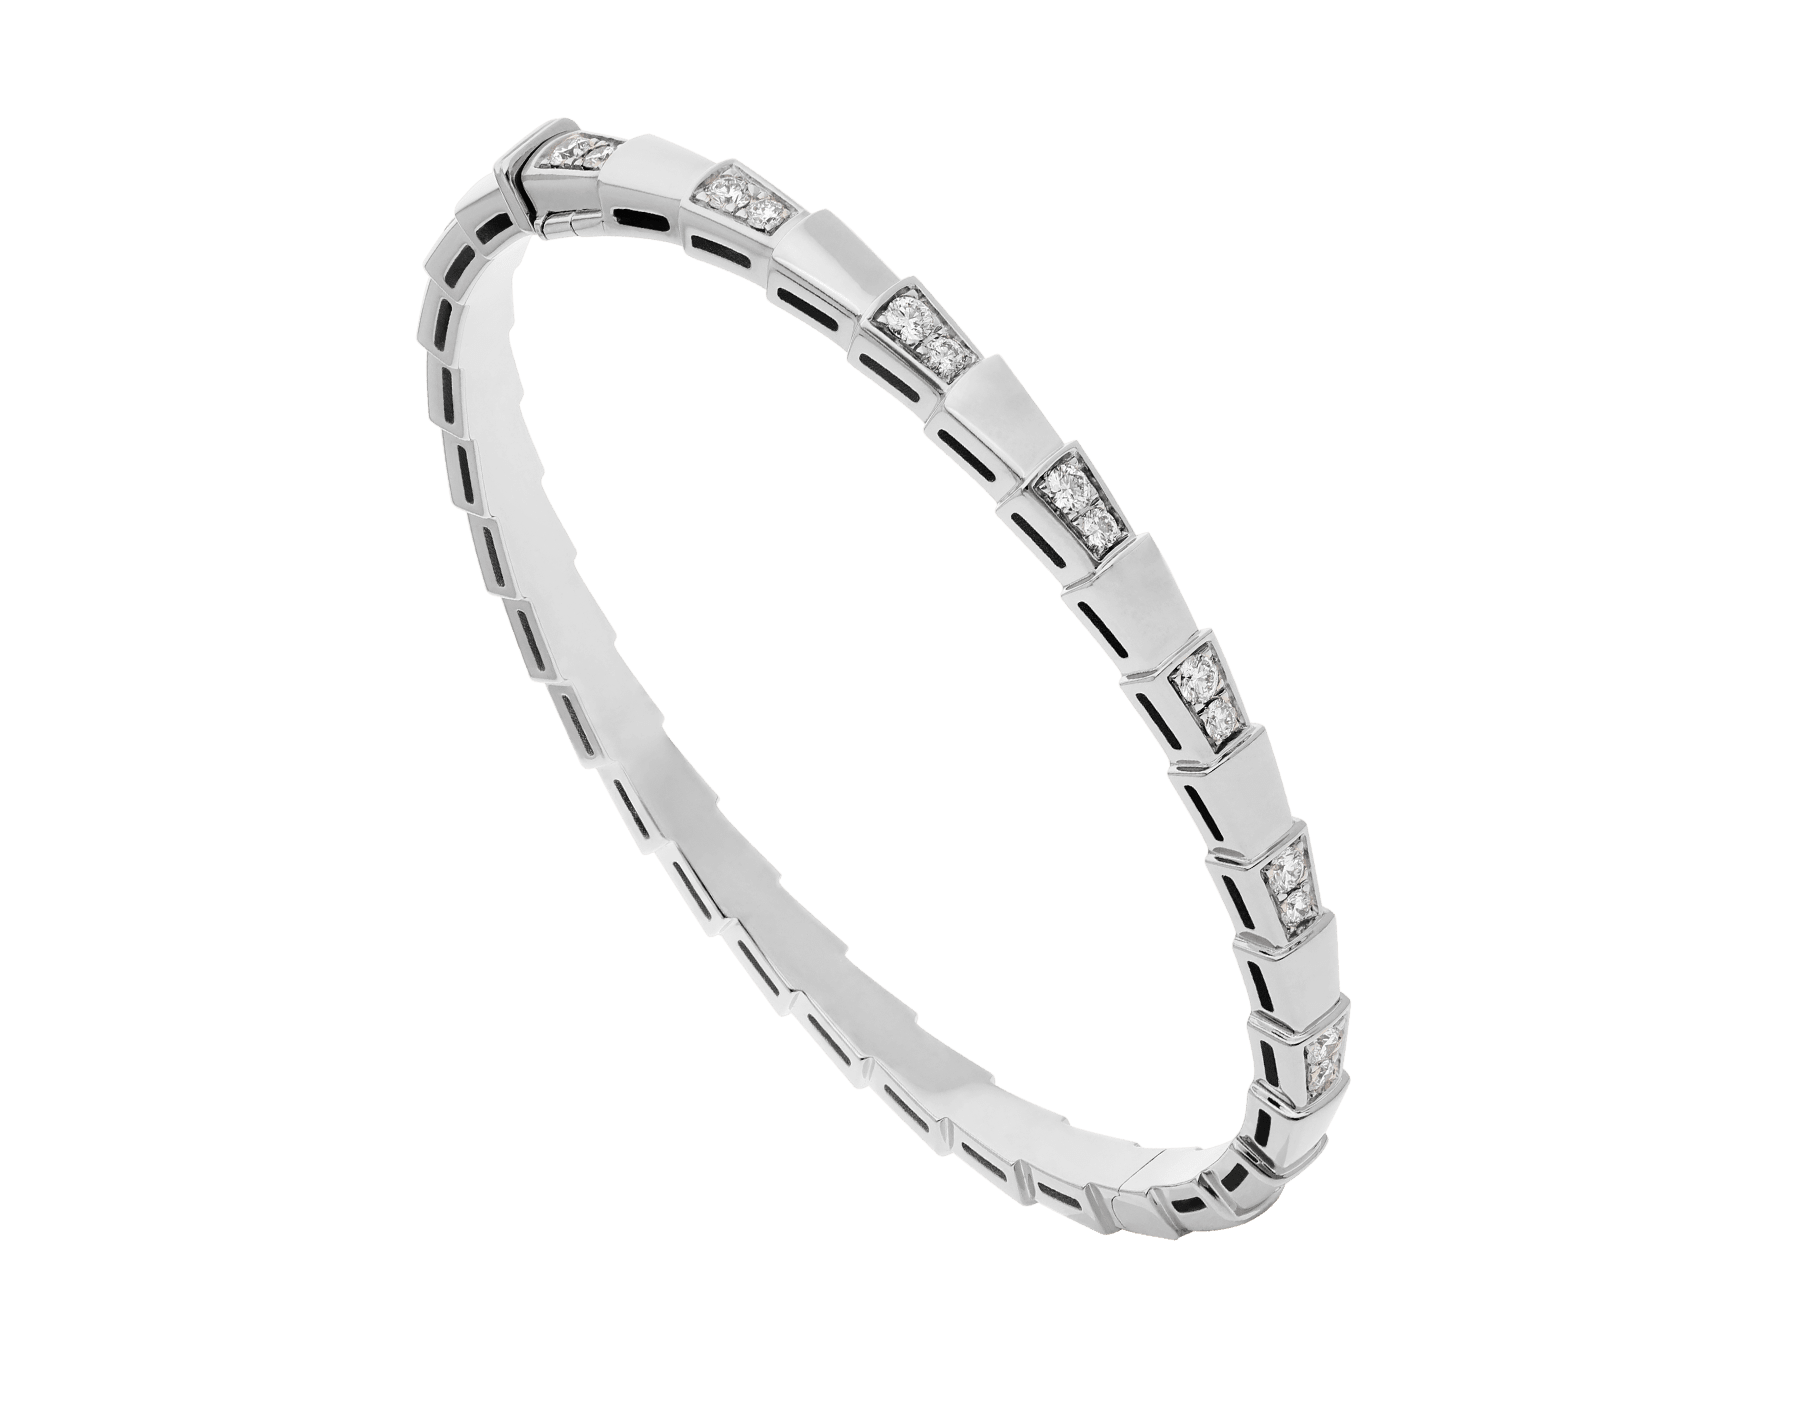 Bracelet Serpenti Viper en or blanc 18 K avec semi-pavé diamants. (4 mm de largeur) BR858420 image 1